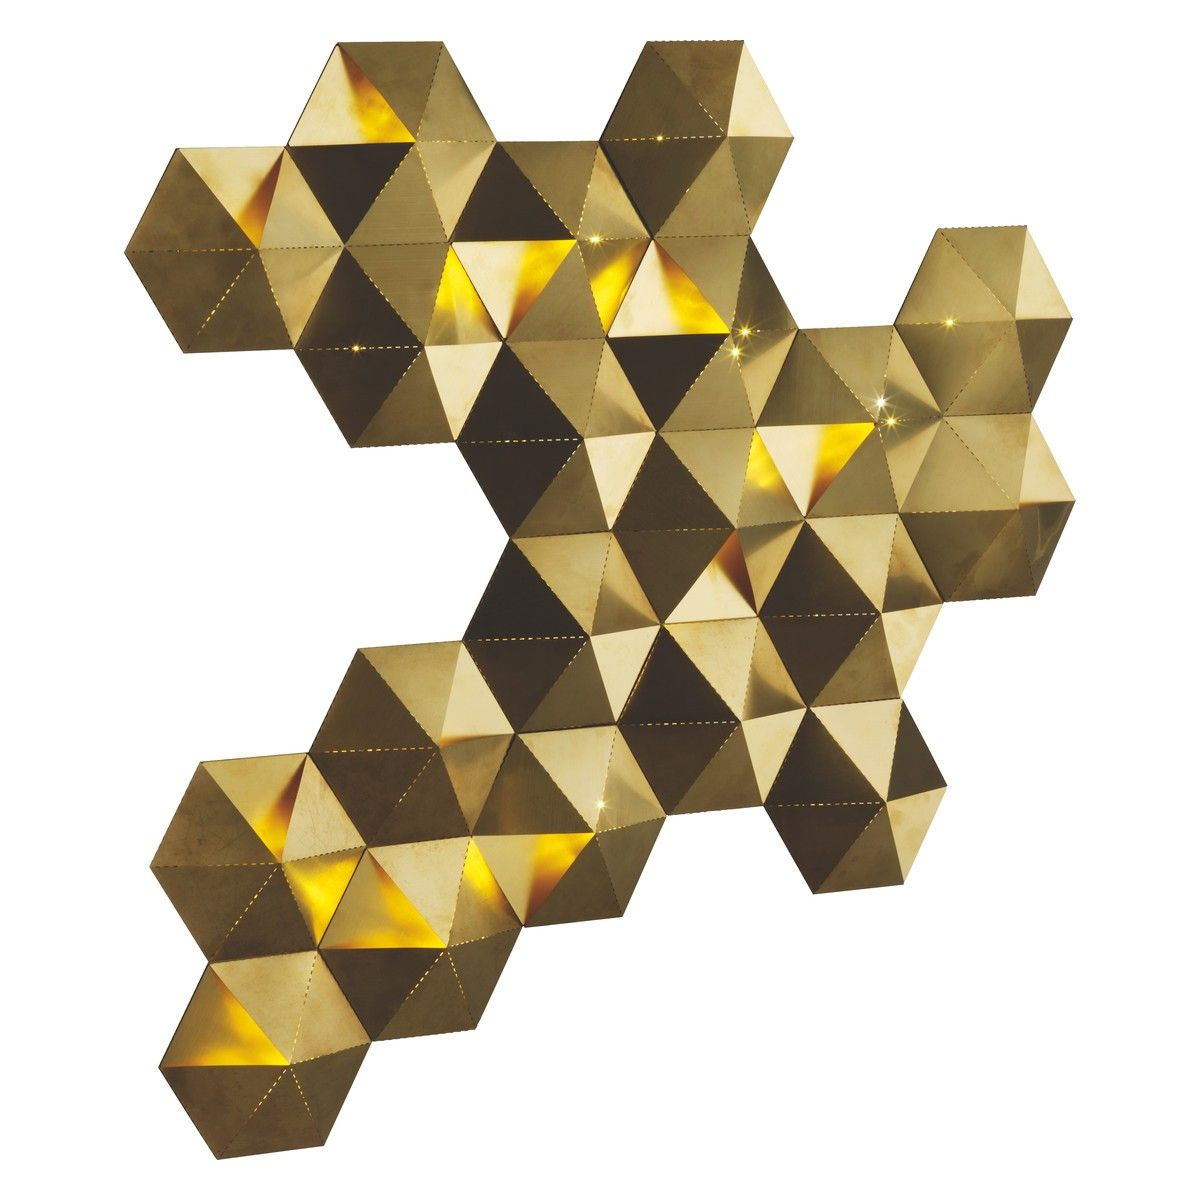 TESSELLATE Gold brushed metal LED decorative wall light ...